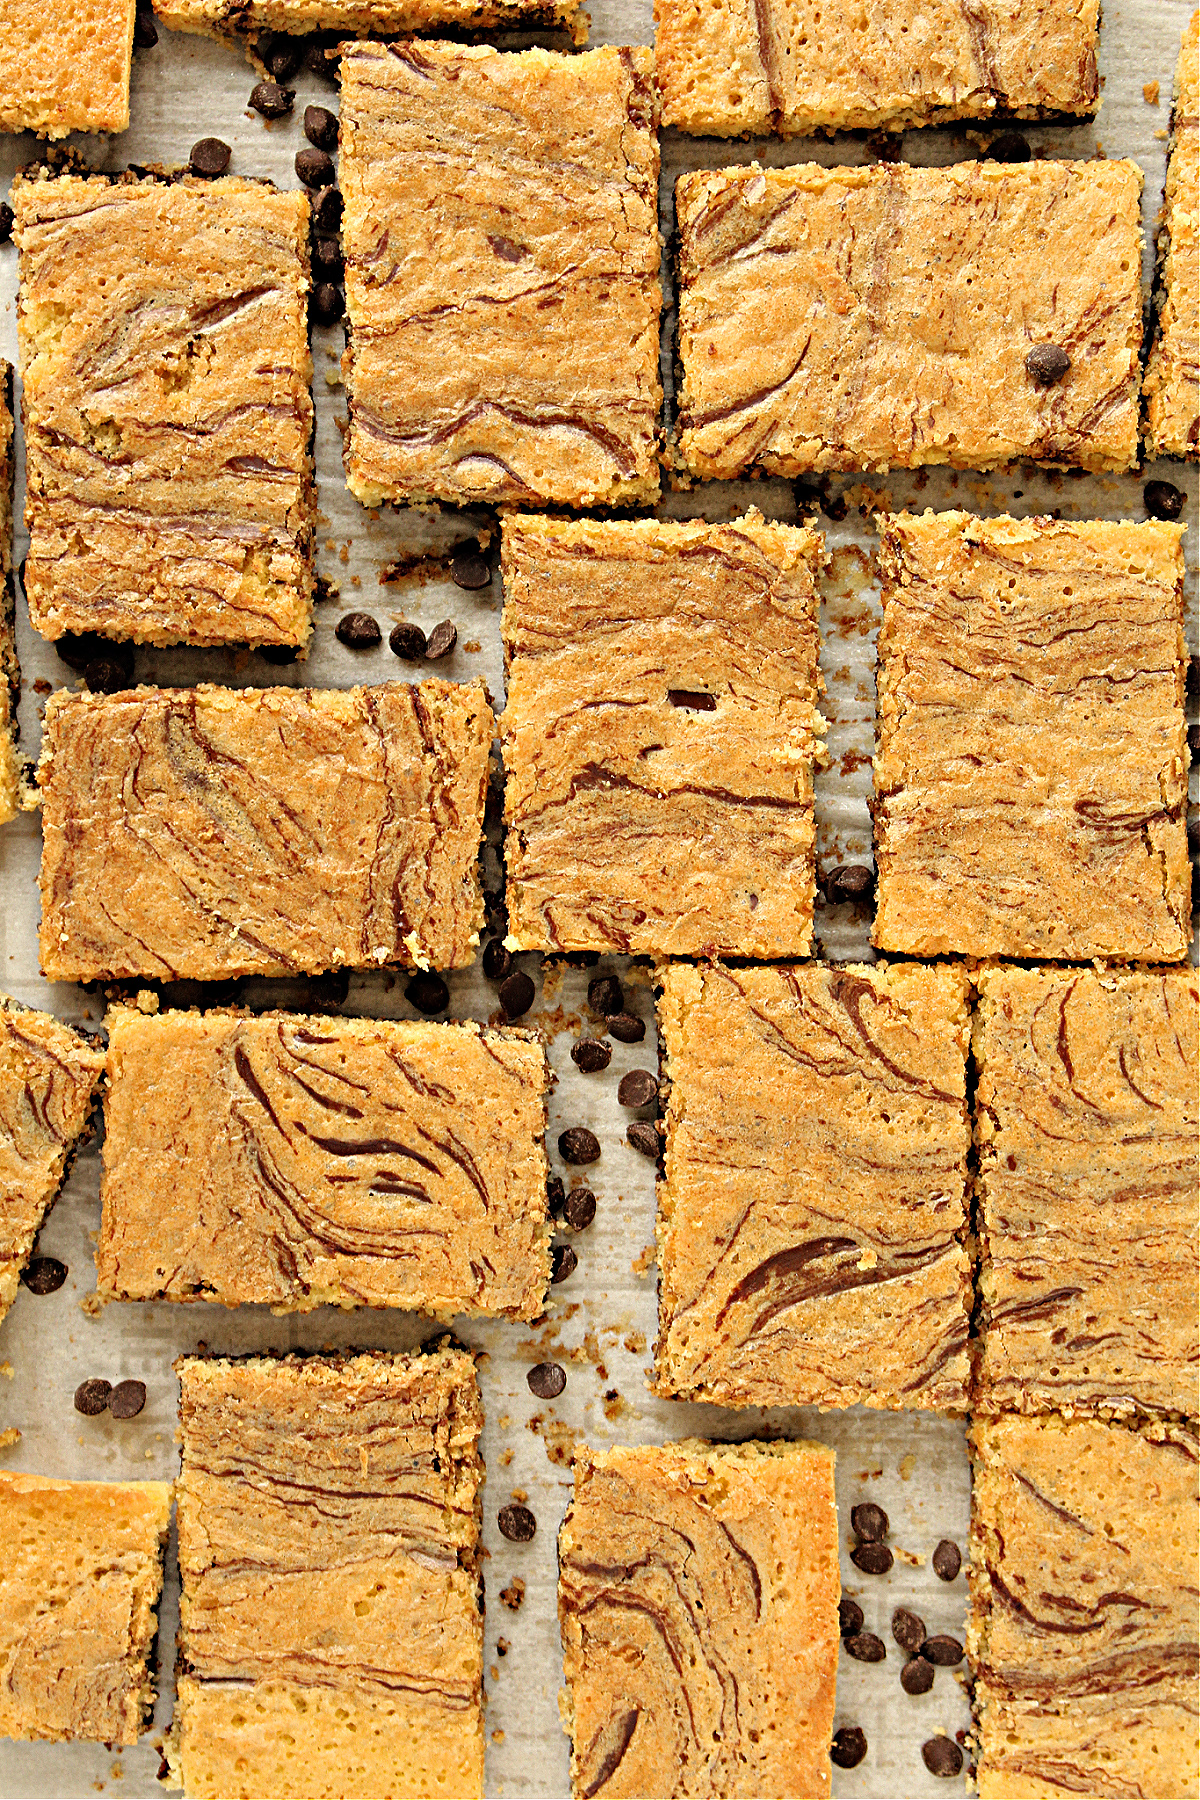 Overhead shot of golden brown cookie bars with swirls of melted chocolate baked in.